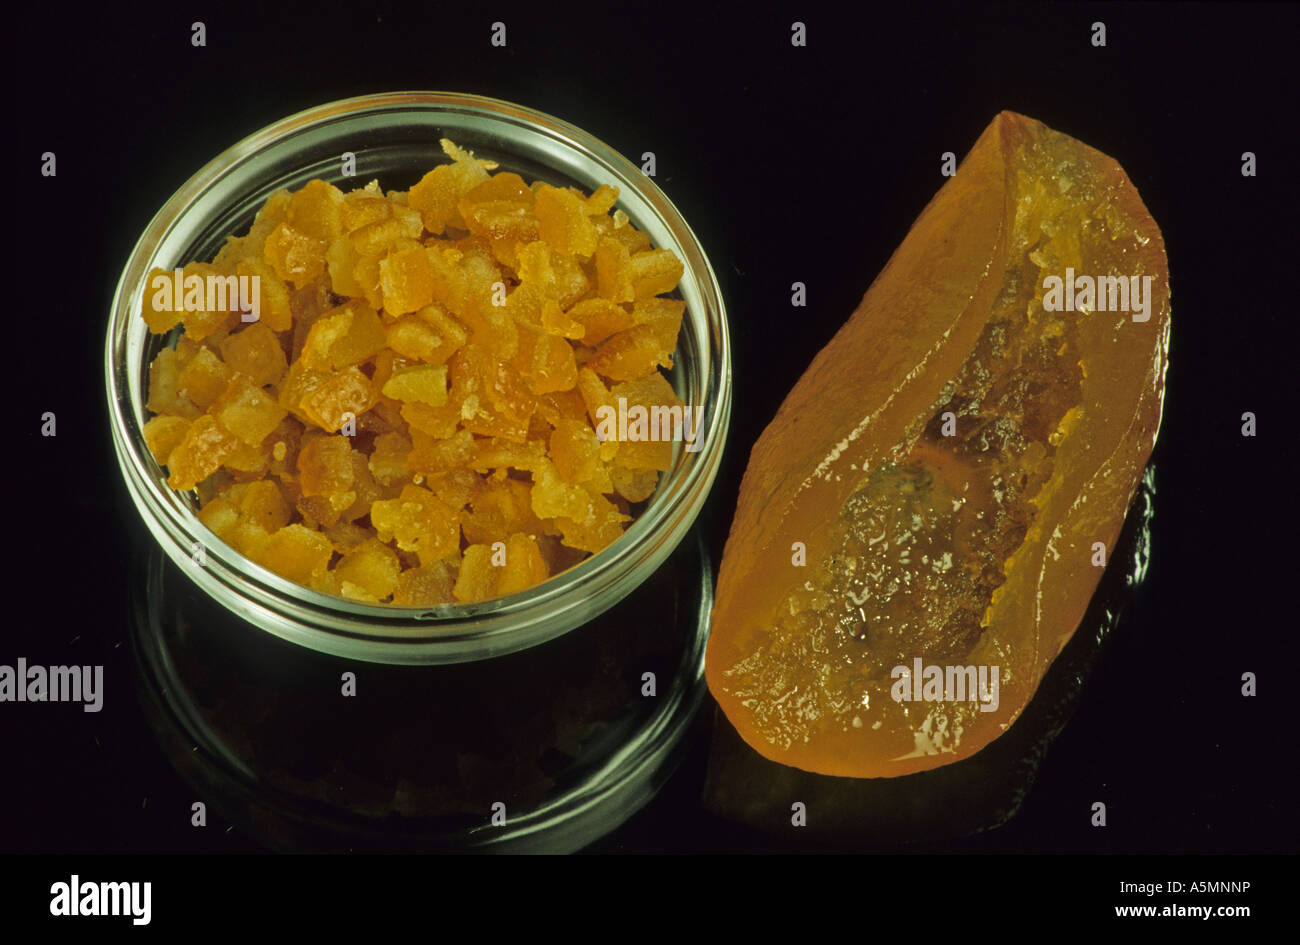 Orangeat candied orange peel Gewürz Backzutat getrocknete Orangenschale citrus sinensis Apfelsinen Lebensmittel Stock Photo